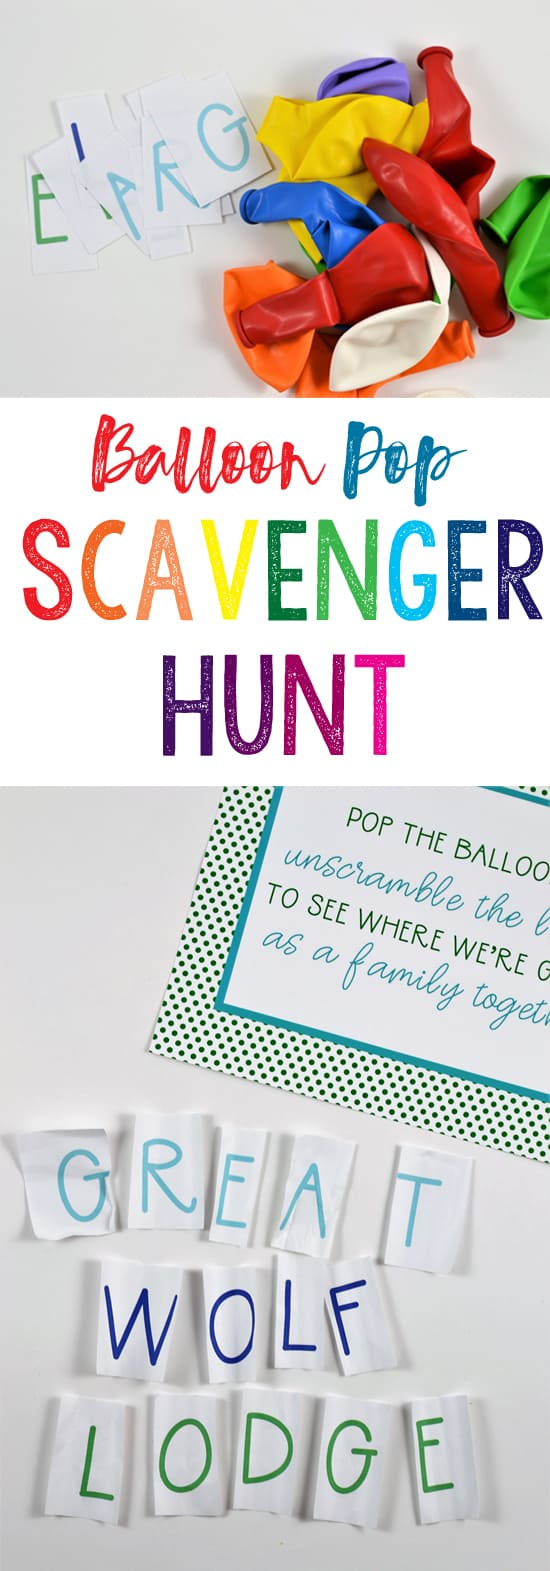 scavenger hunt kids | balloon pop | scavenger hunt | kids activities | kids | traveling with kids